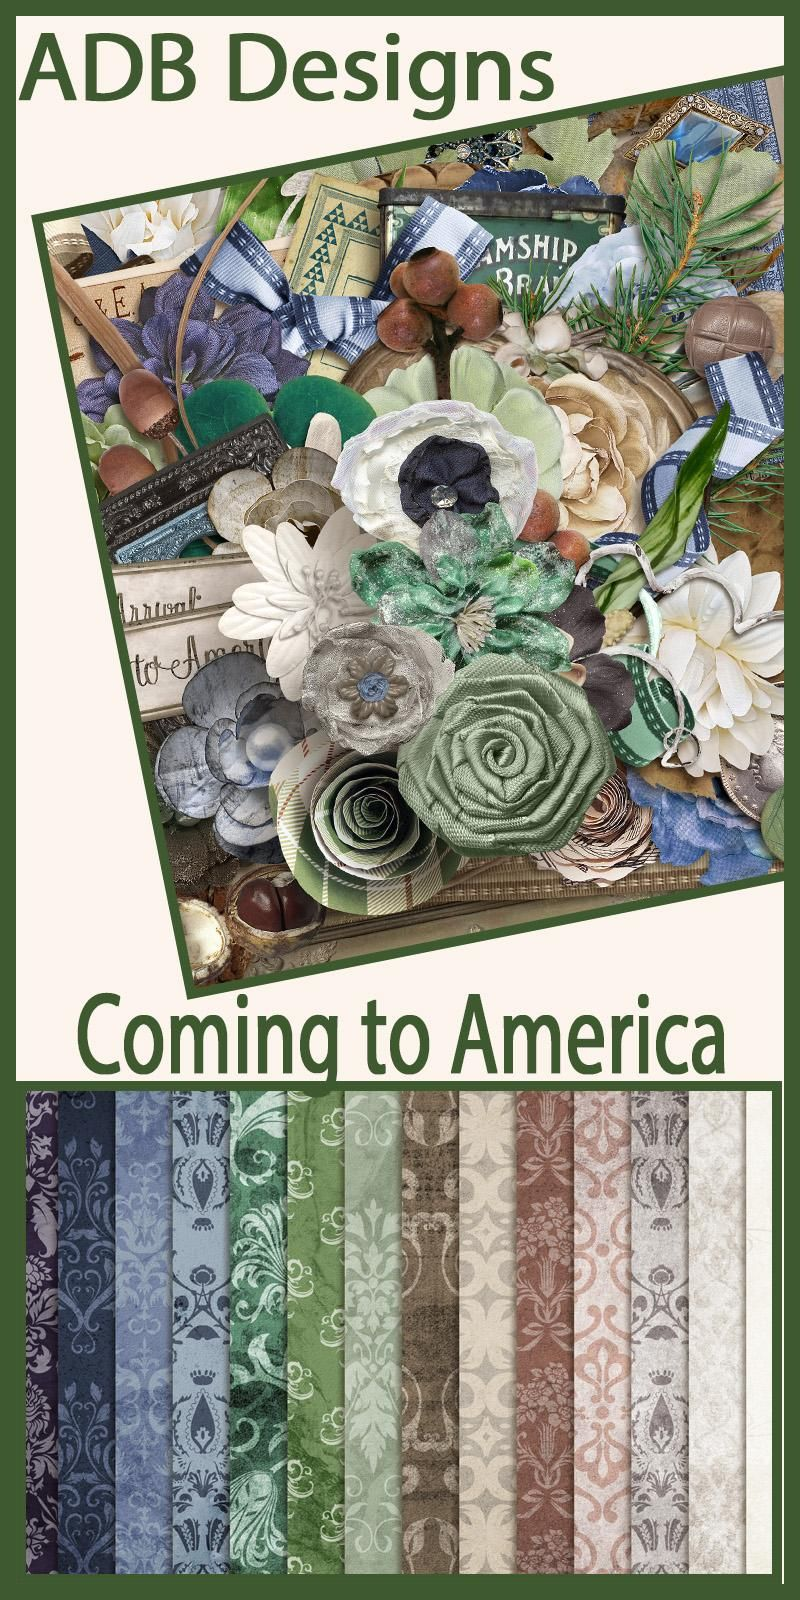 Coming to America celebrates that immigrant history we share. The palette of browns, blues and greens is perfect for scrapping your heritage photos and stories.  #ADBDesigns #digitalscrapbooking #ComingToAmerica  https://adb-designs.com/shop/index.php?main_page=advanced_search_result&search_in_description=1&keyword=ADB-coming-to-america